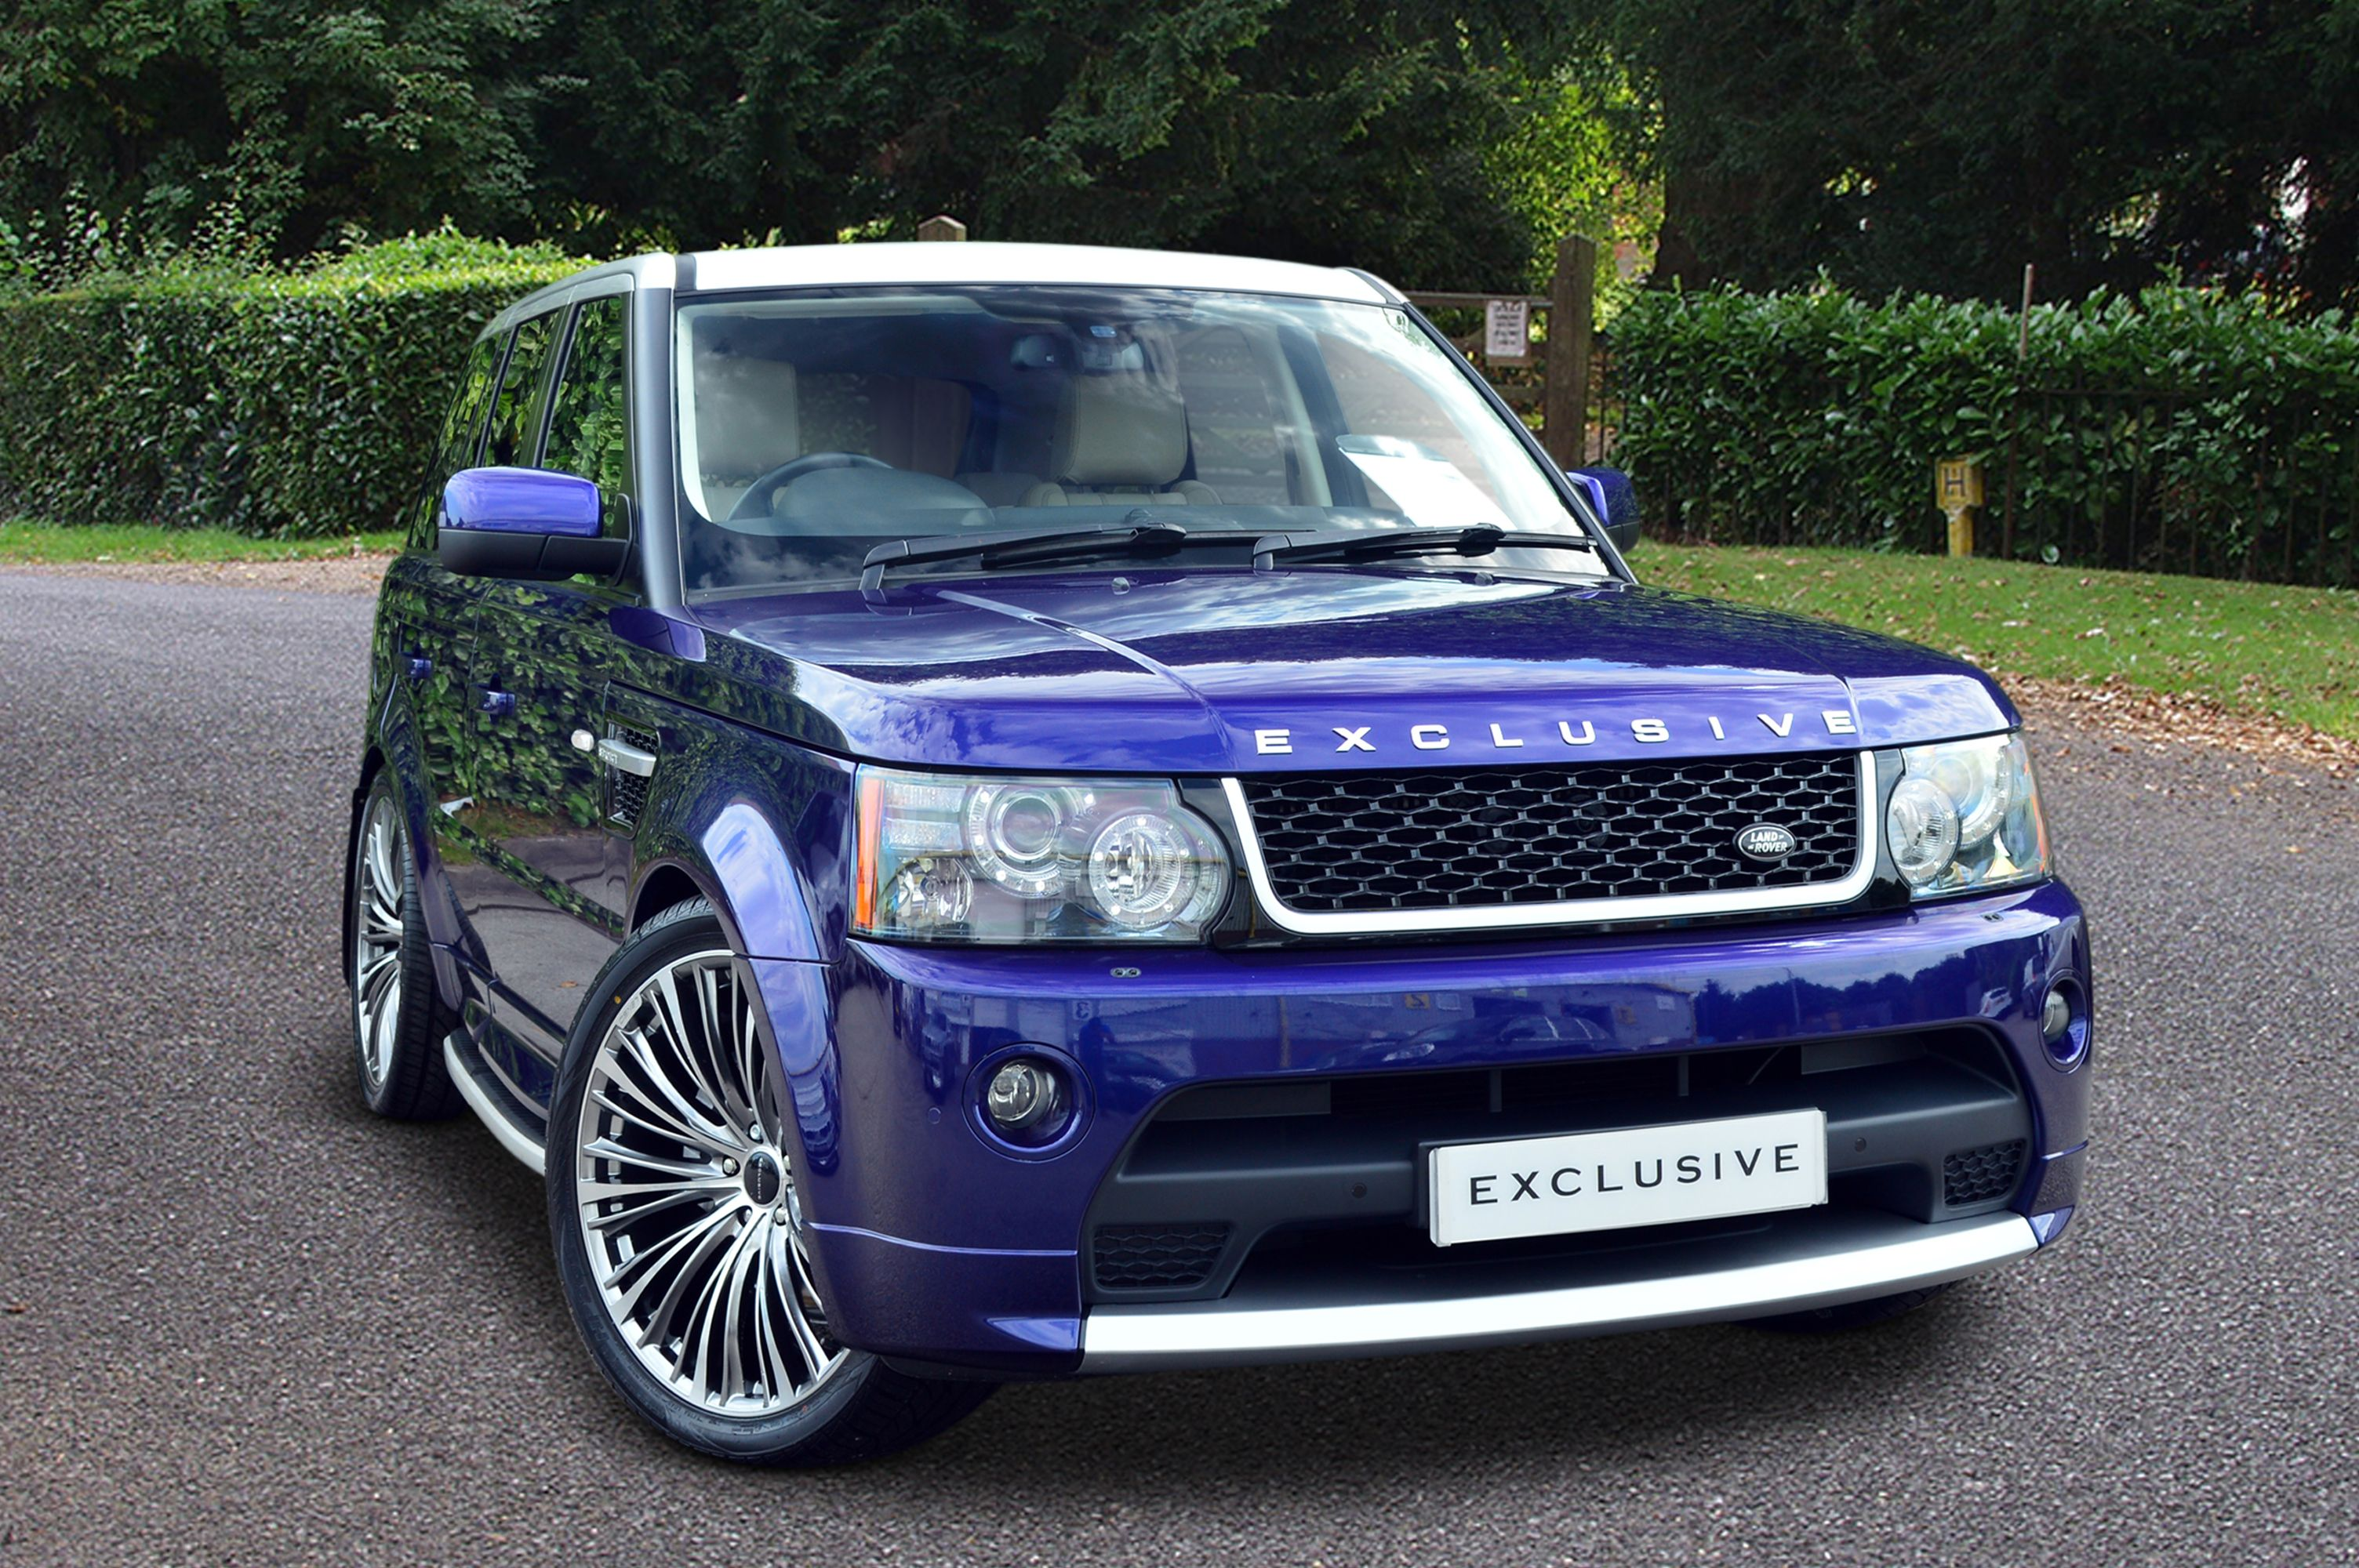 Range Rover Sport finished in a metallic Bali Blue paint The roof